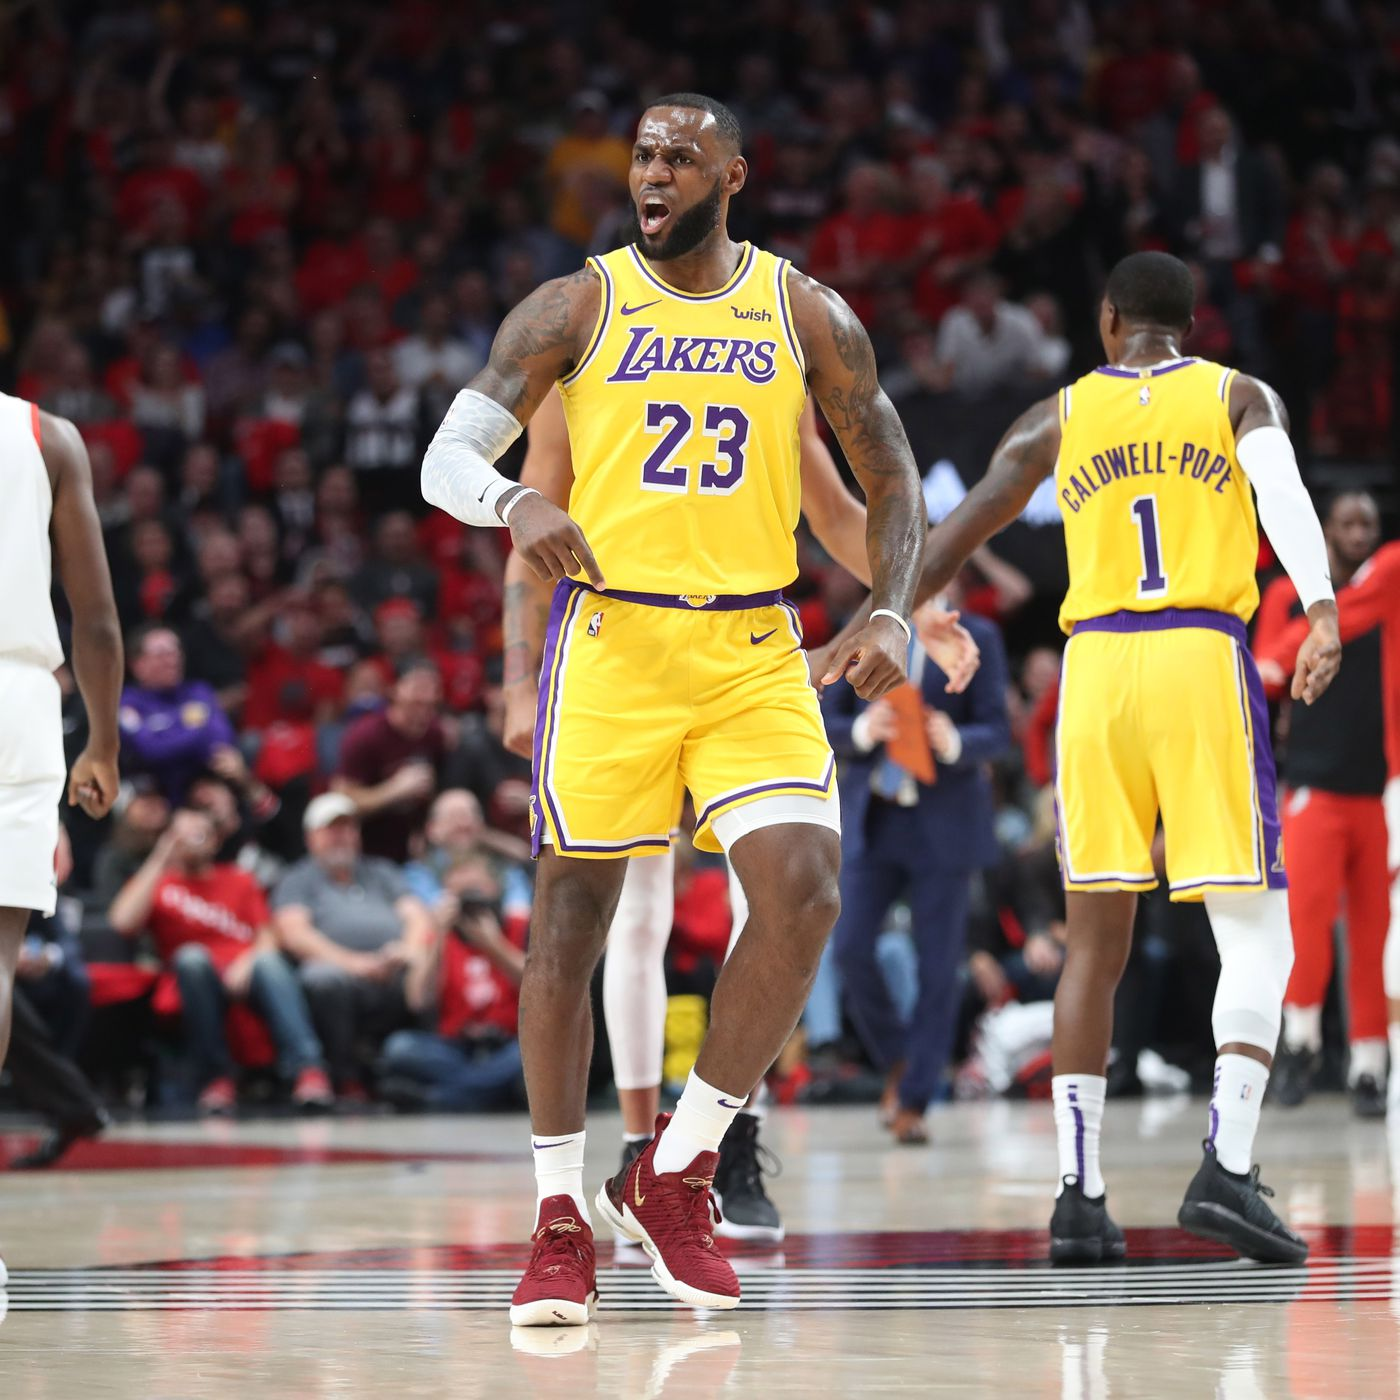 cd626ada329 LeBron James  Lakers debut  8 things to know - SBNation.com